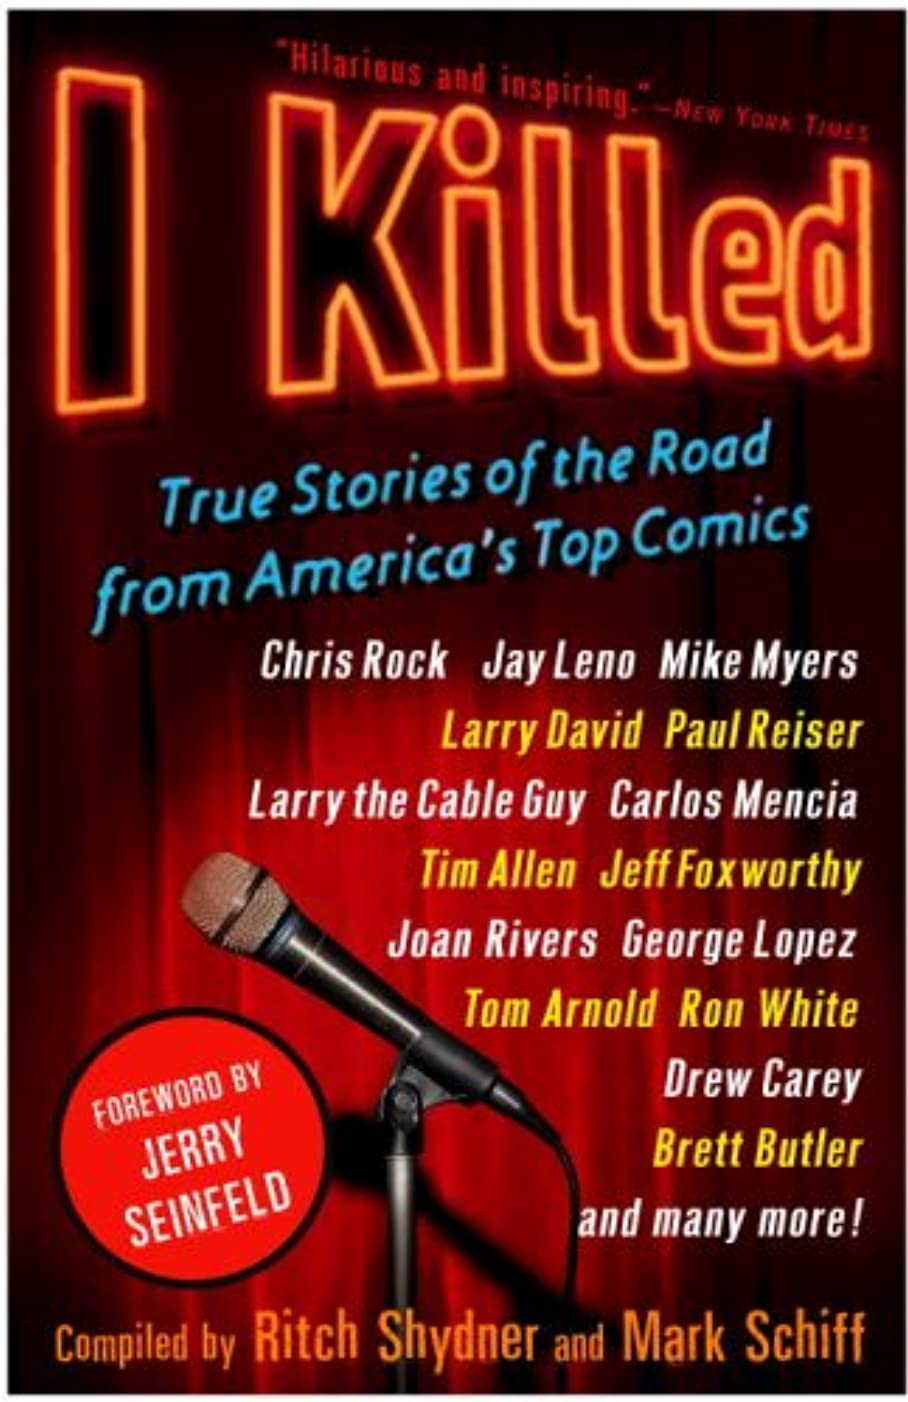 I Killed: True Stories of the Road from America's Top Comics (English Edition)